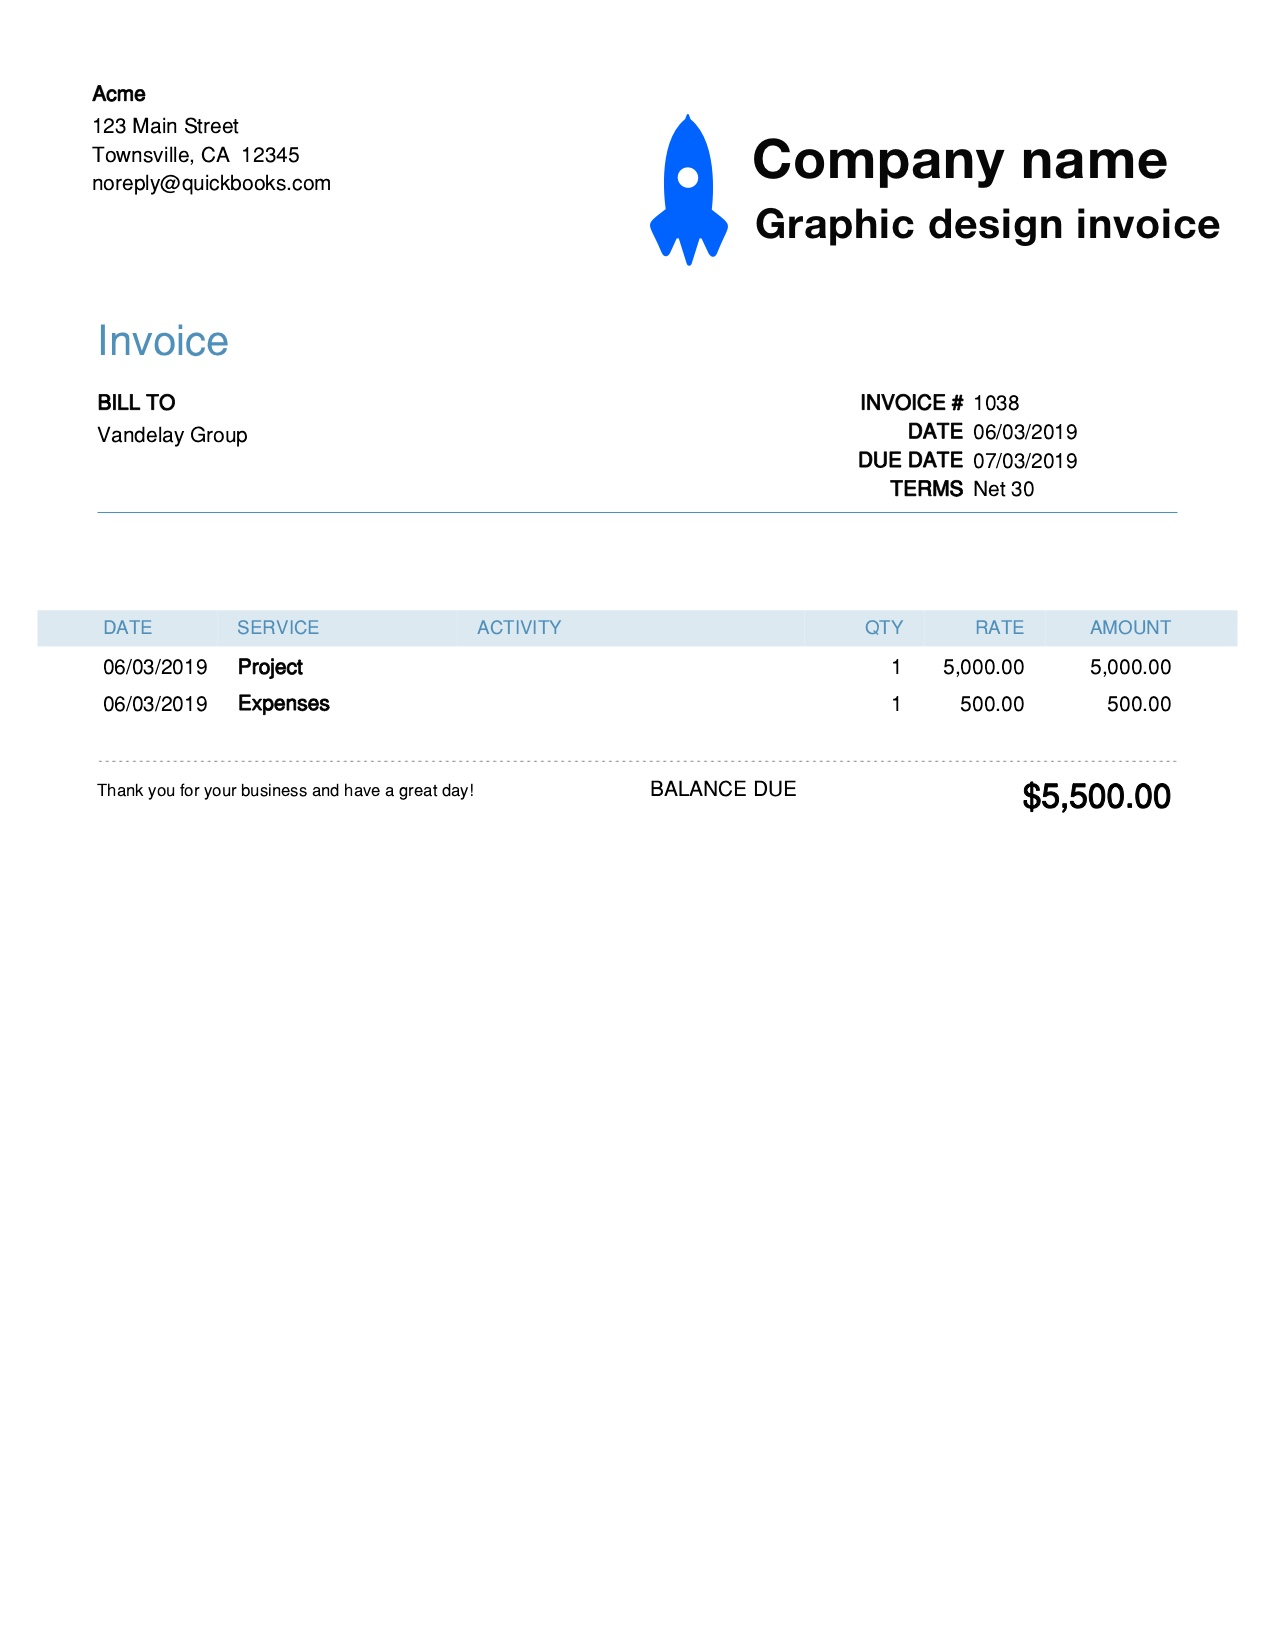 Graphic Design Invoice Template Customize And Send In 90